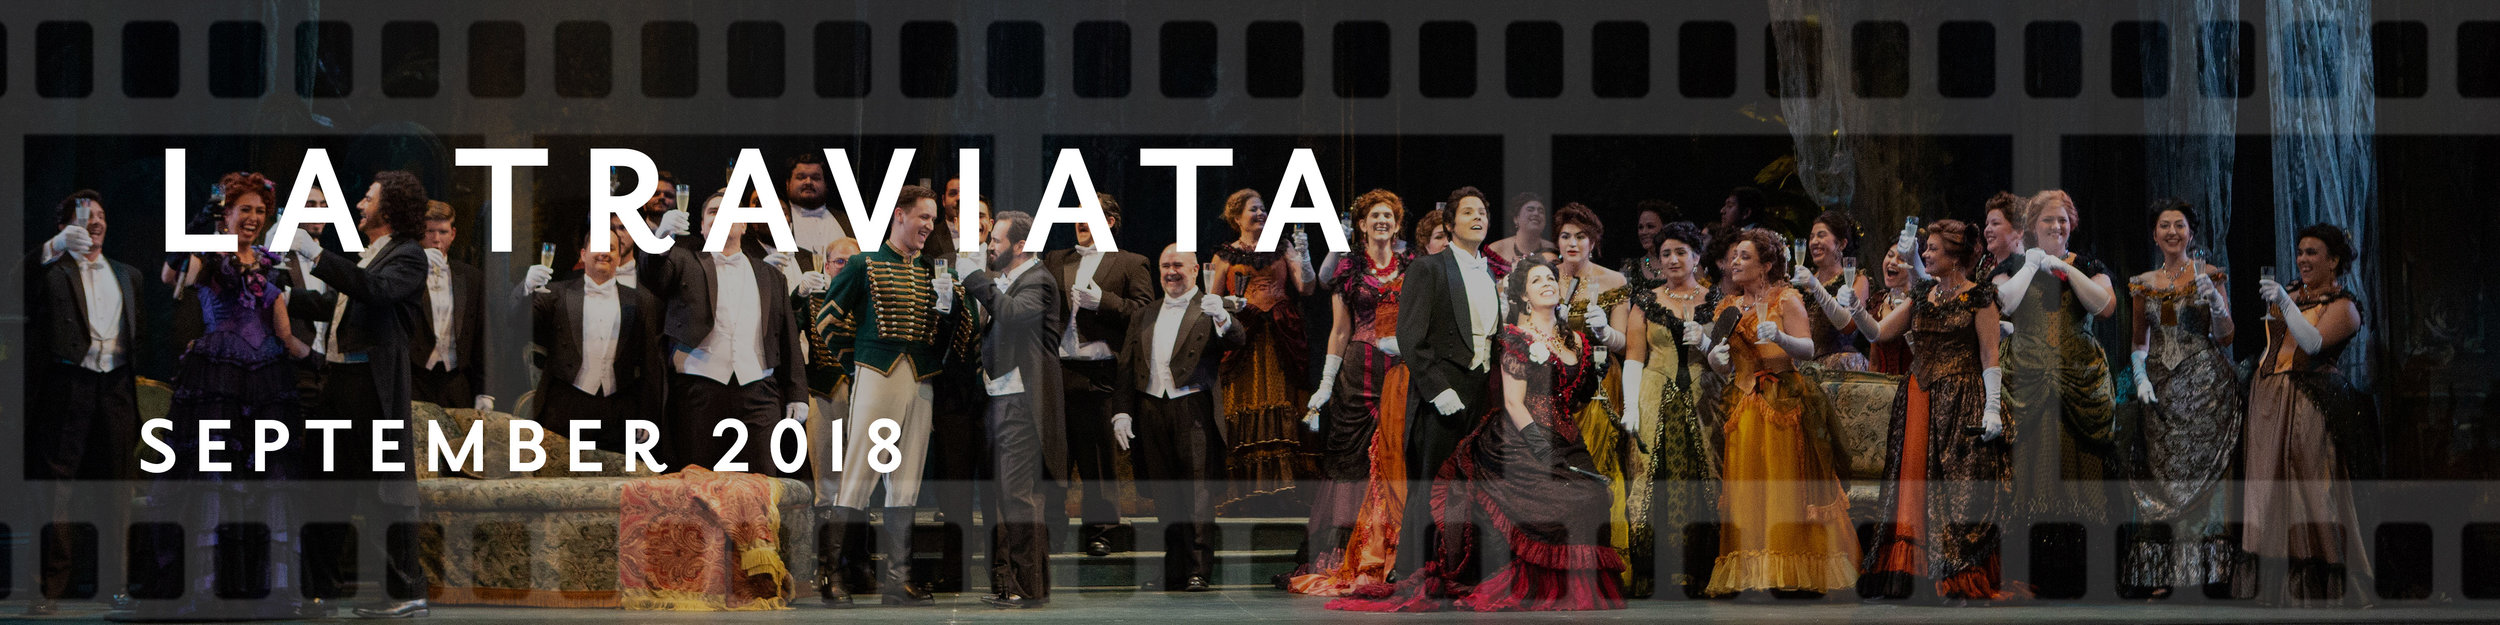 LA-TRAVIATA_Video-Gallery-Button.jpg